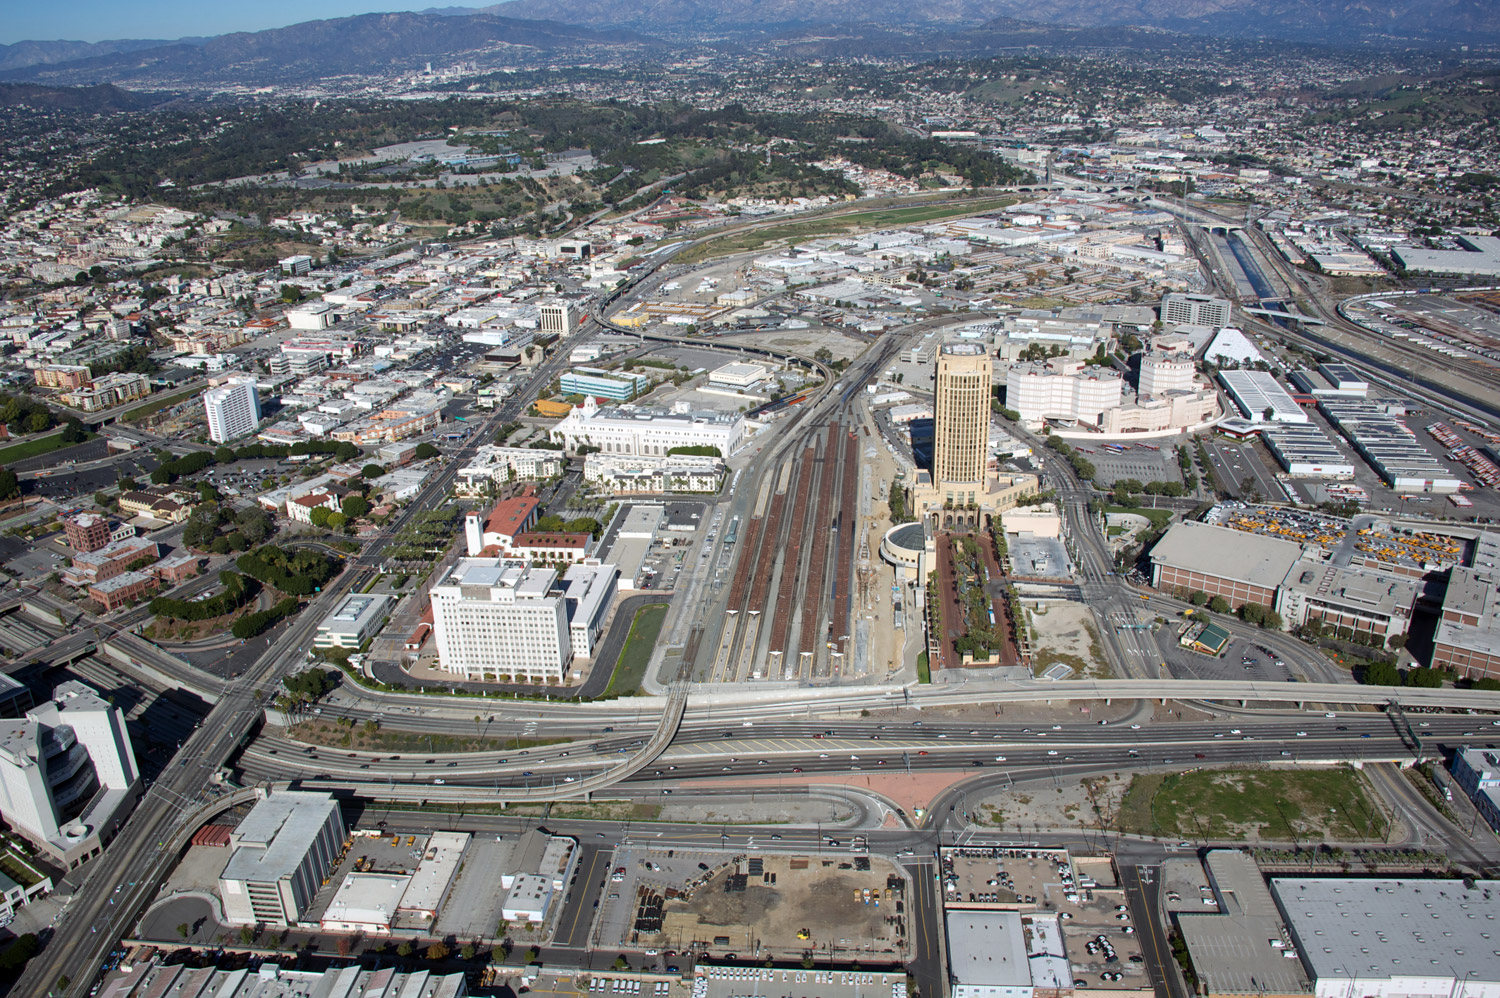 ULI Panel: As the regional transit hub, Union Station connects five southern California counties with multiple rail and commuter lines, including Amtrak, Metro Rail, and Metrolink as well as Metro and other tranist buses.